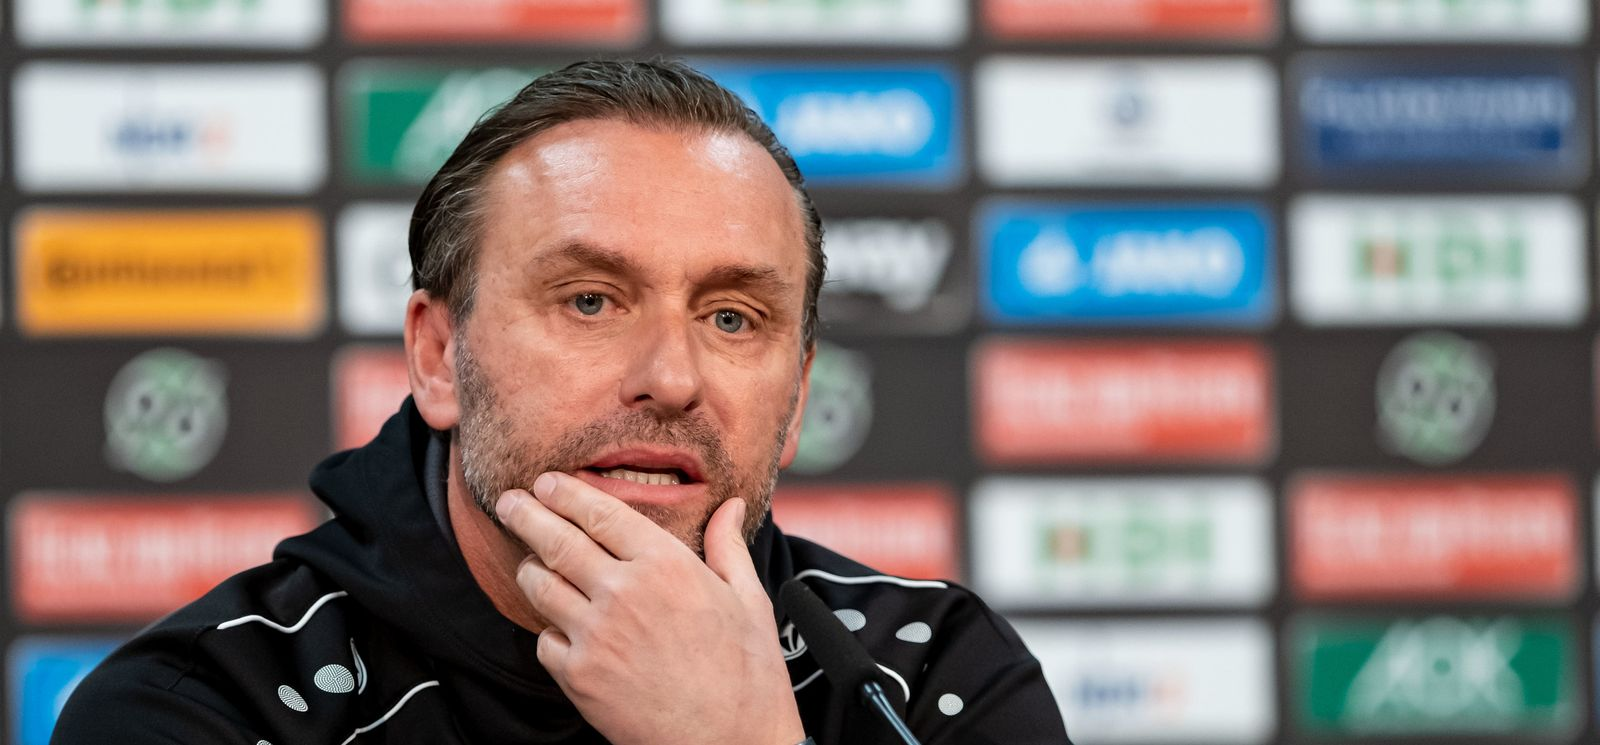 Hannover 96 - Trainer Thomas Doll